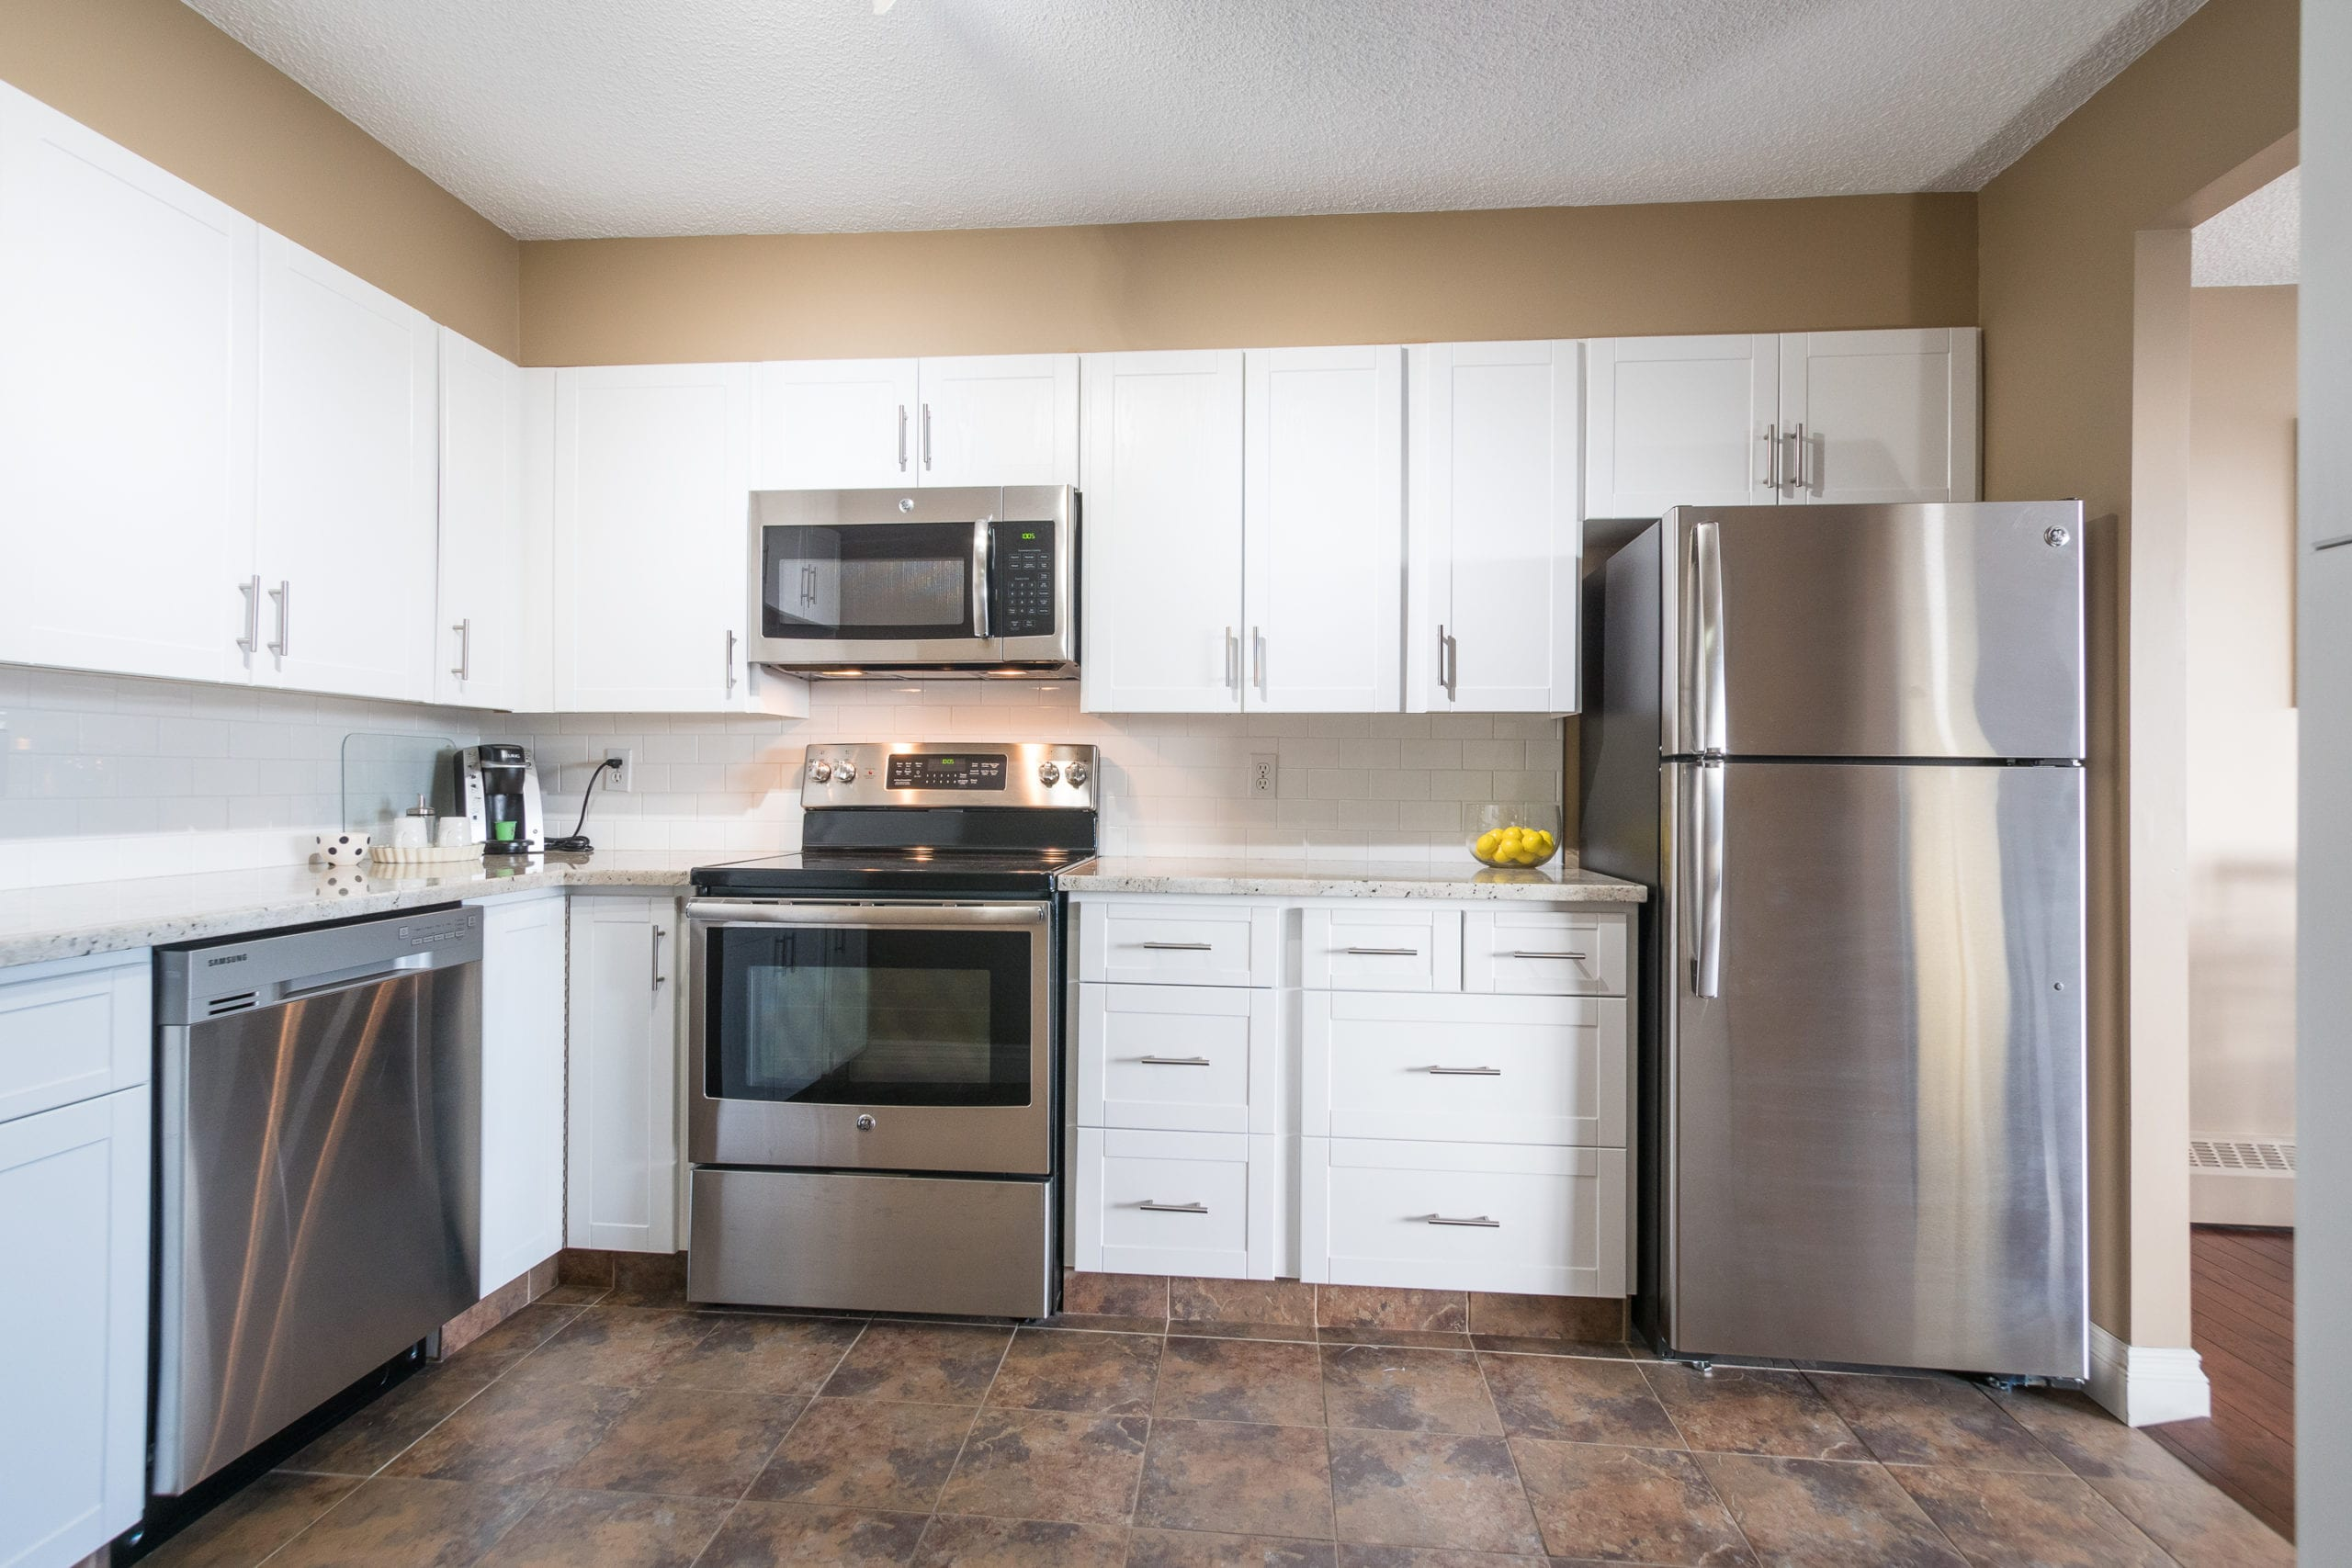 Hello Gorgeous - #705-145 point drive NW, Calgary AB - Tara Molina Real Estate (8 of 45)